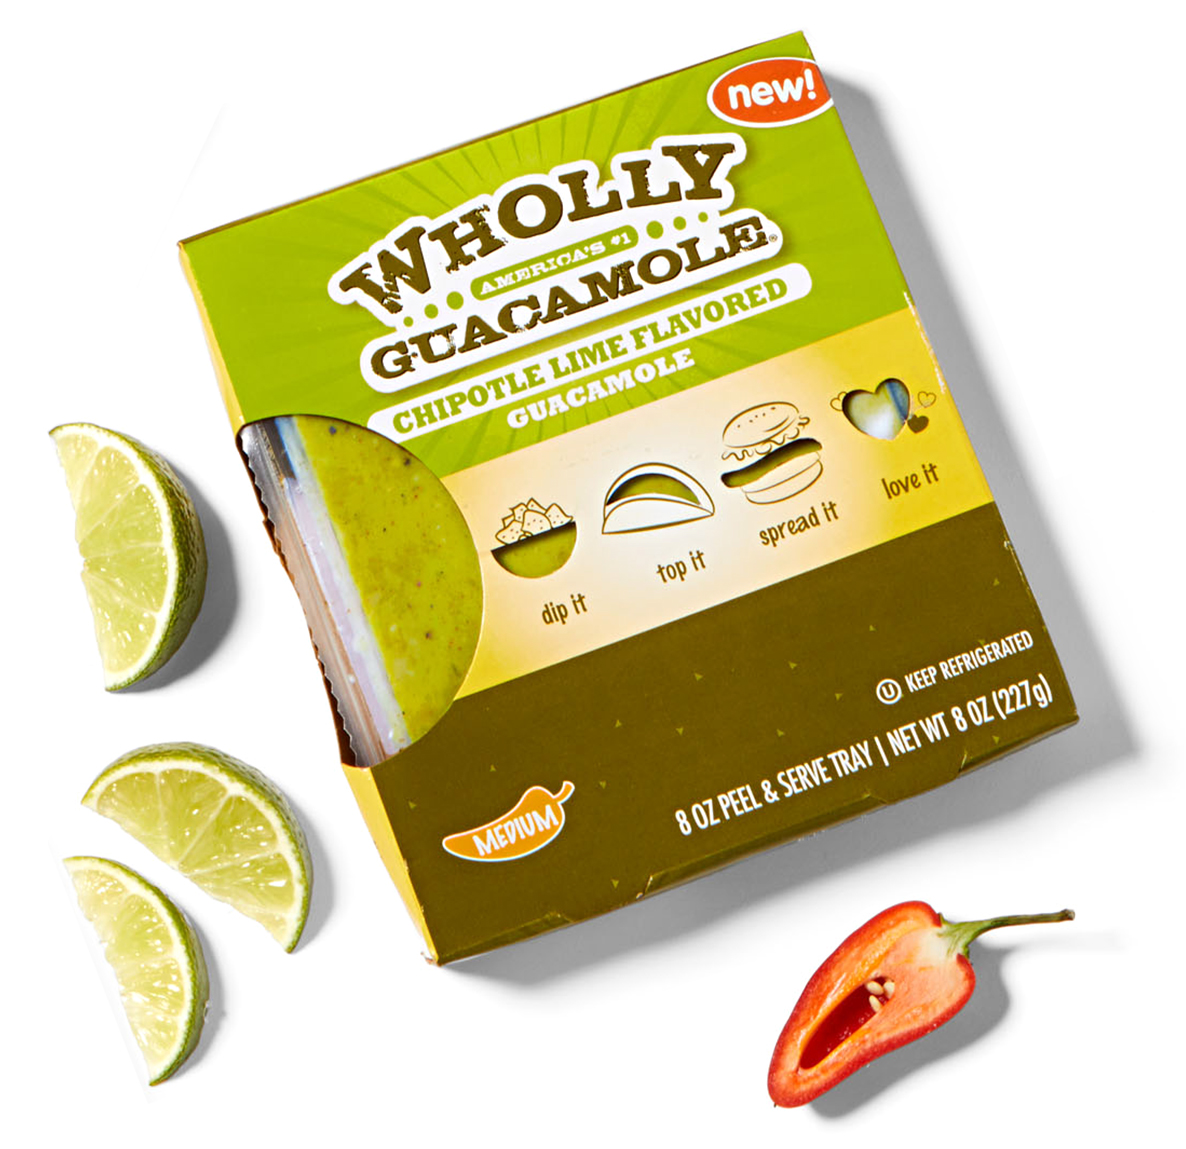 Wholly Guacamole Chipotle Lime